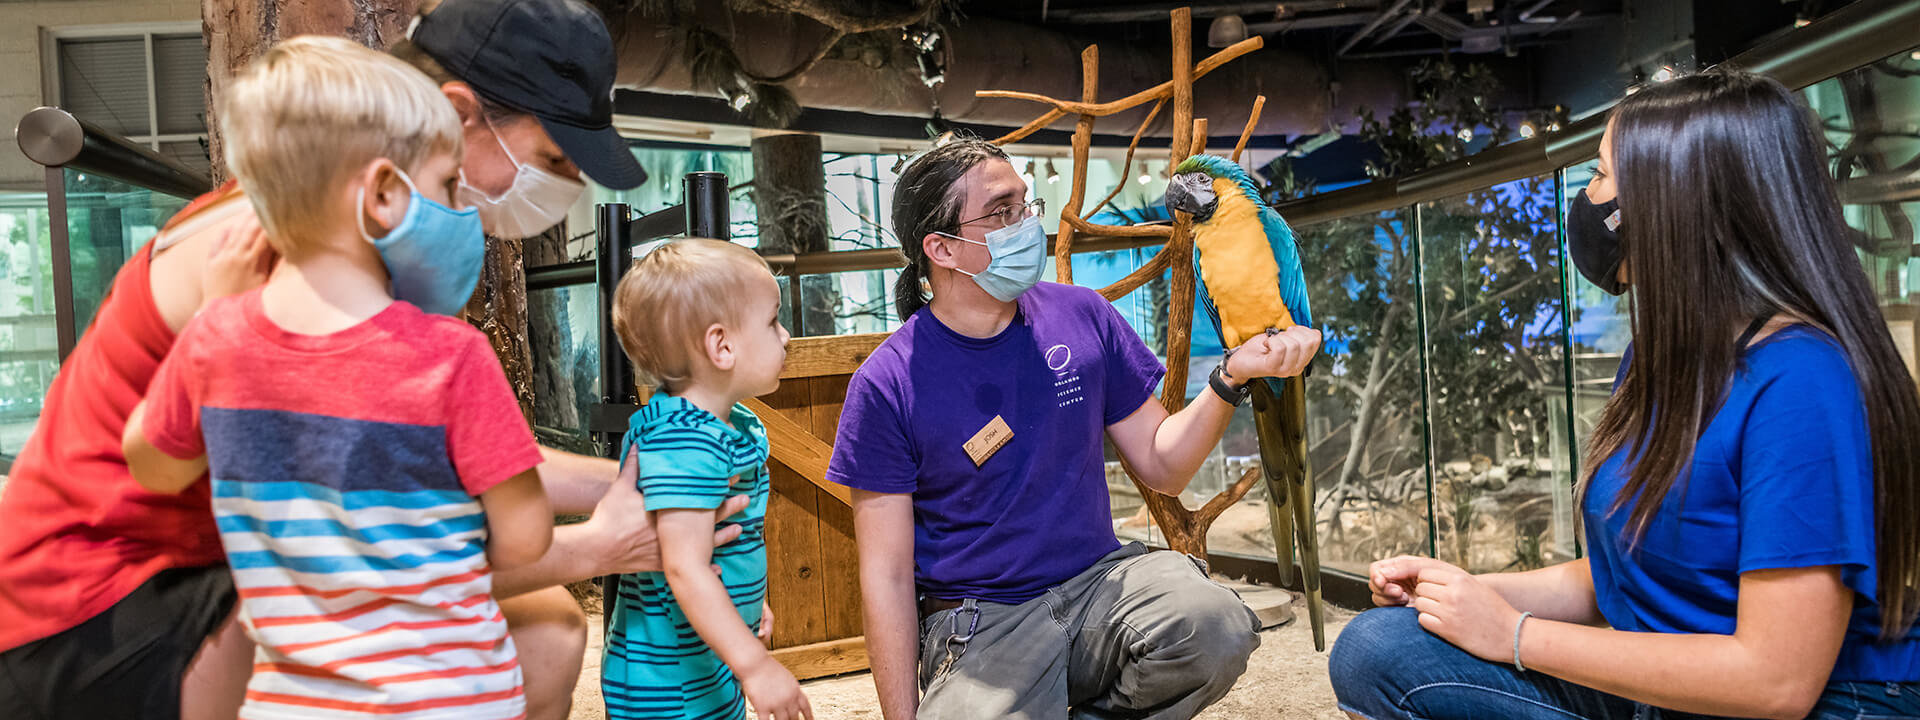 Small Private Experiences group interacting with animal keeper and Captain the parrot.